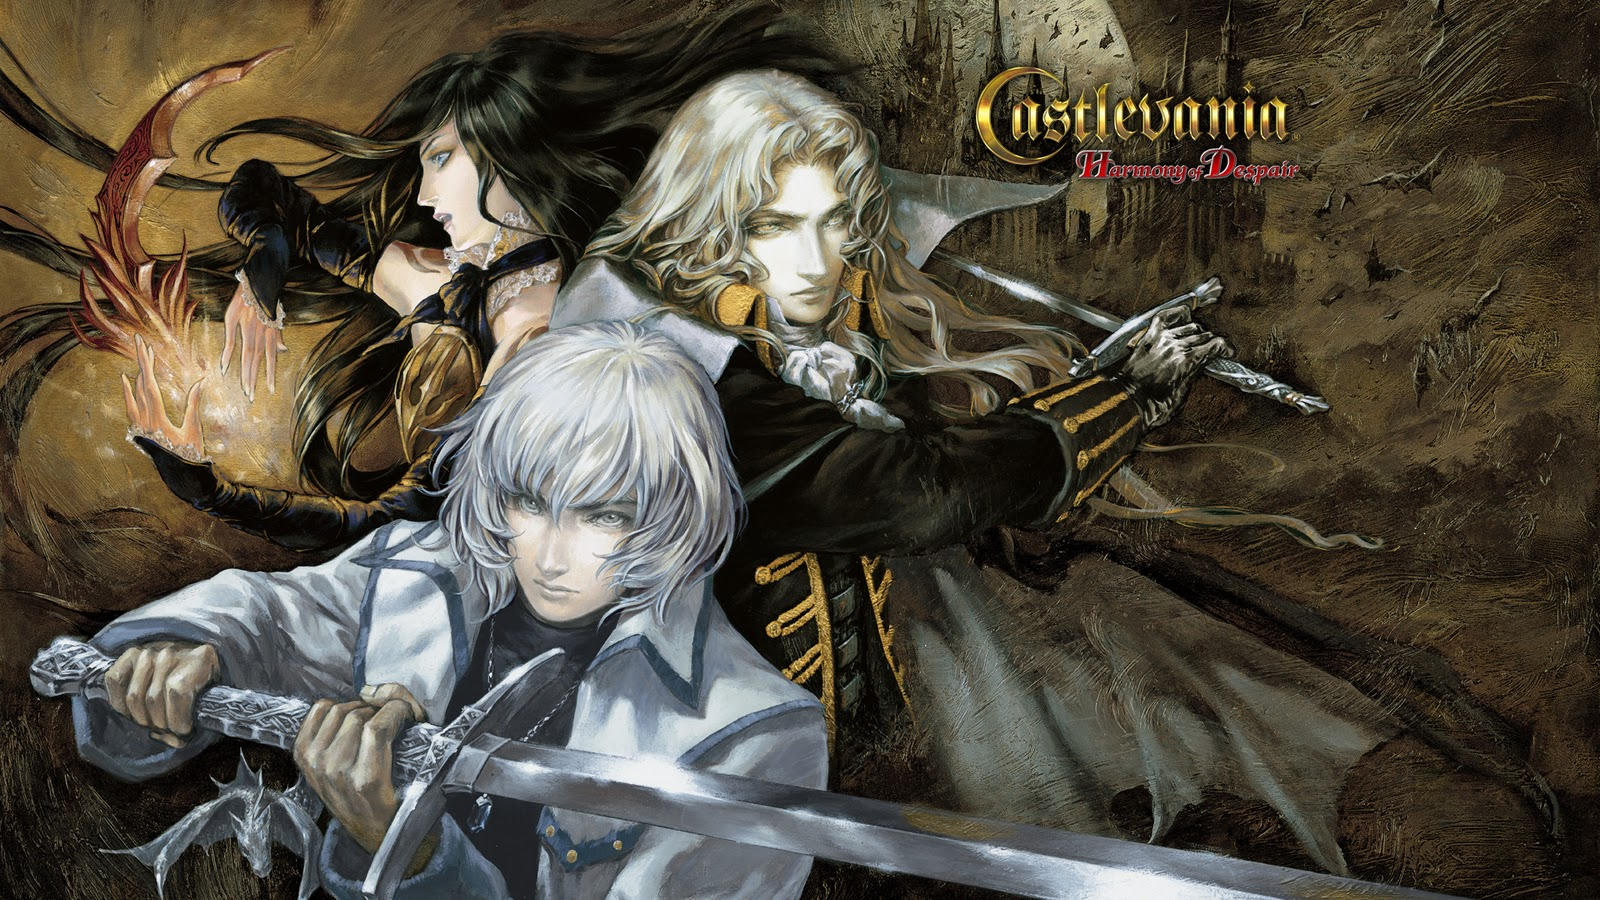 Castlevania Wallpapers Video Game Hq Castlevania Pictures 4k